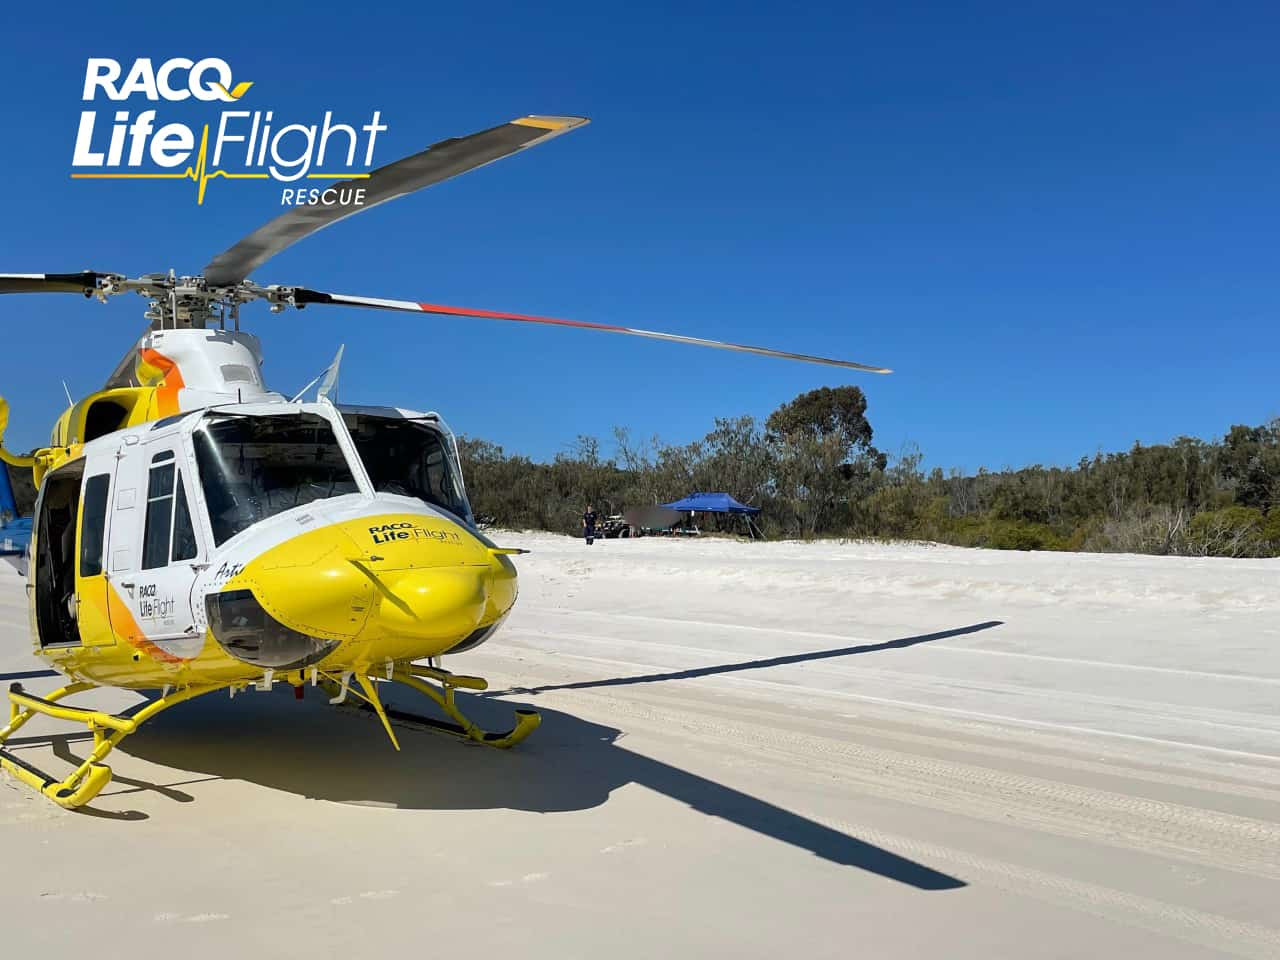 Beach landing for RACQ LifeFlight Rescue helicopter mission